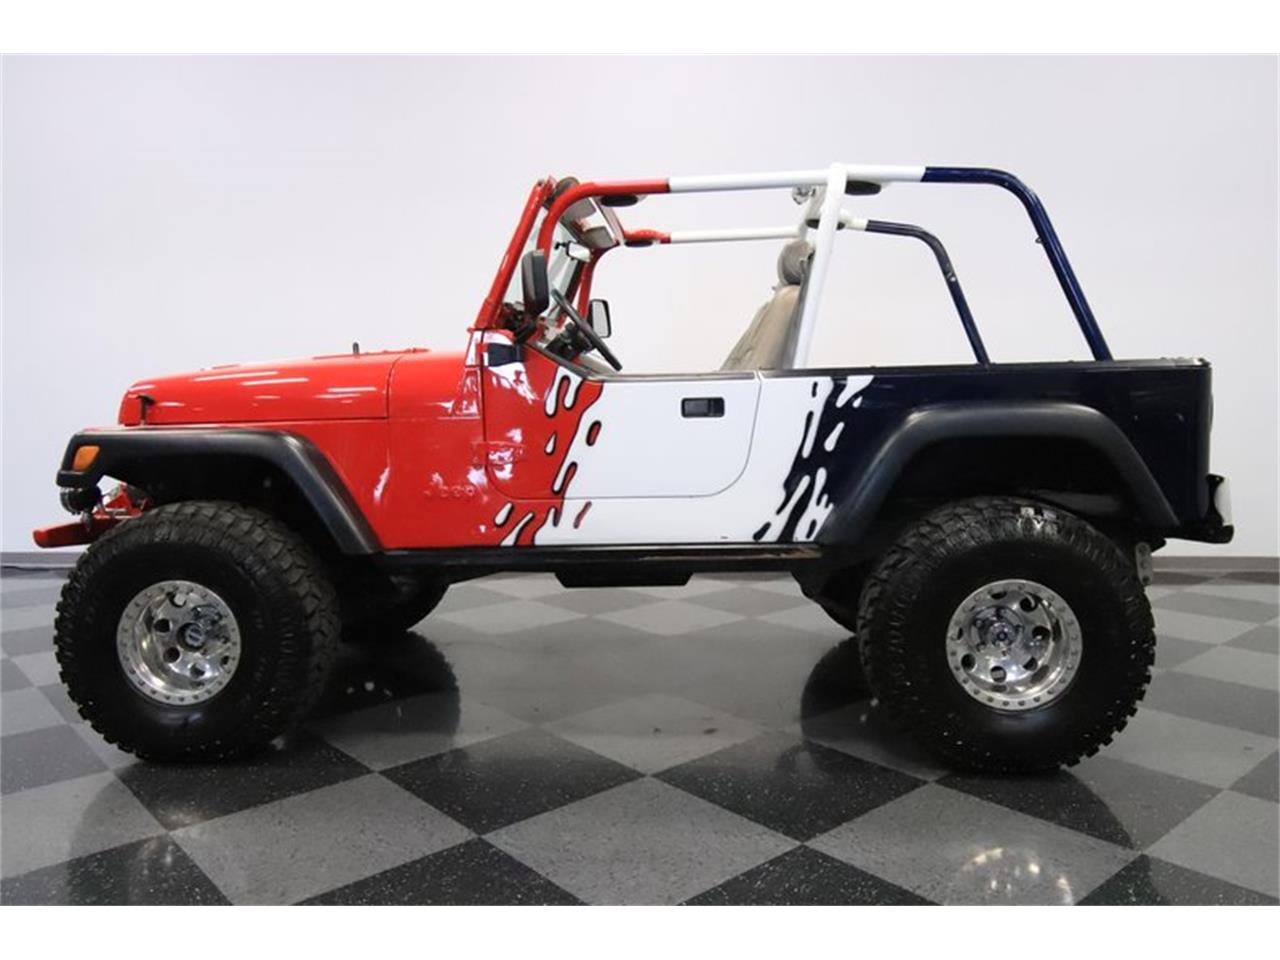 Large Picture of 1983 CJ8 Scrambler located in Mesa Arizona Offered by Streetside Classics - Phoenix - Q5HM